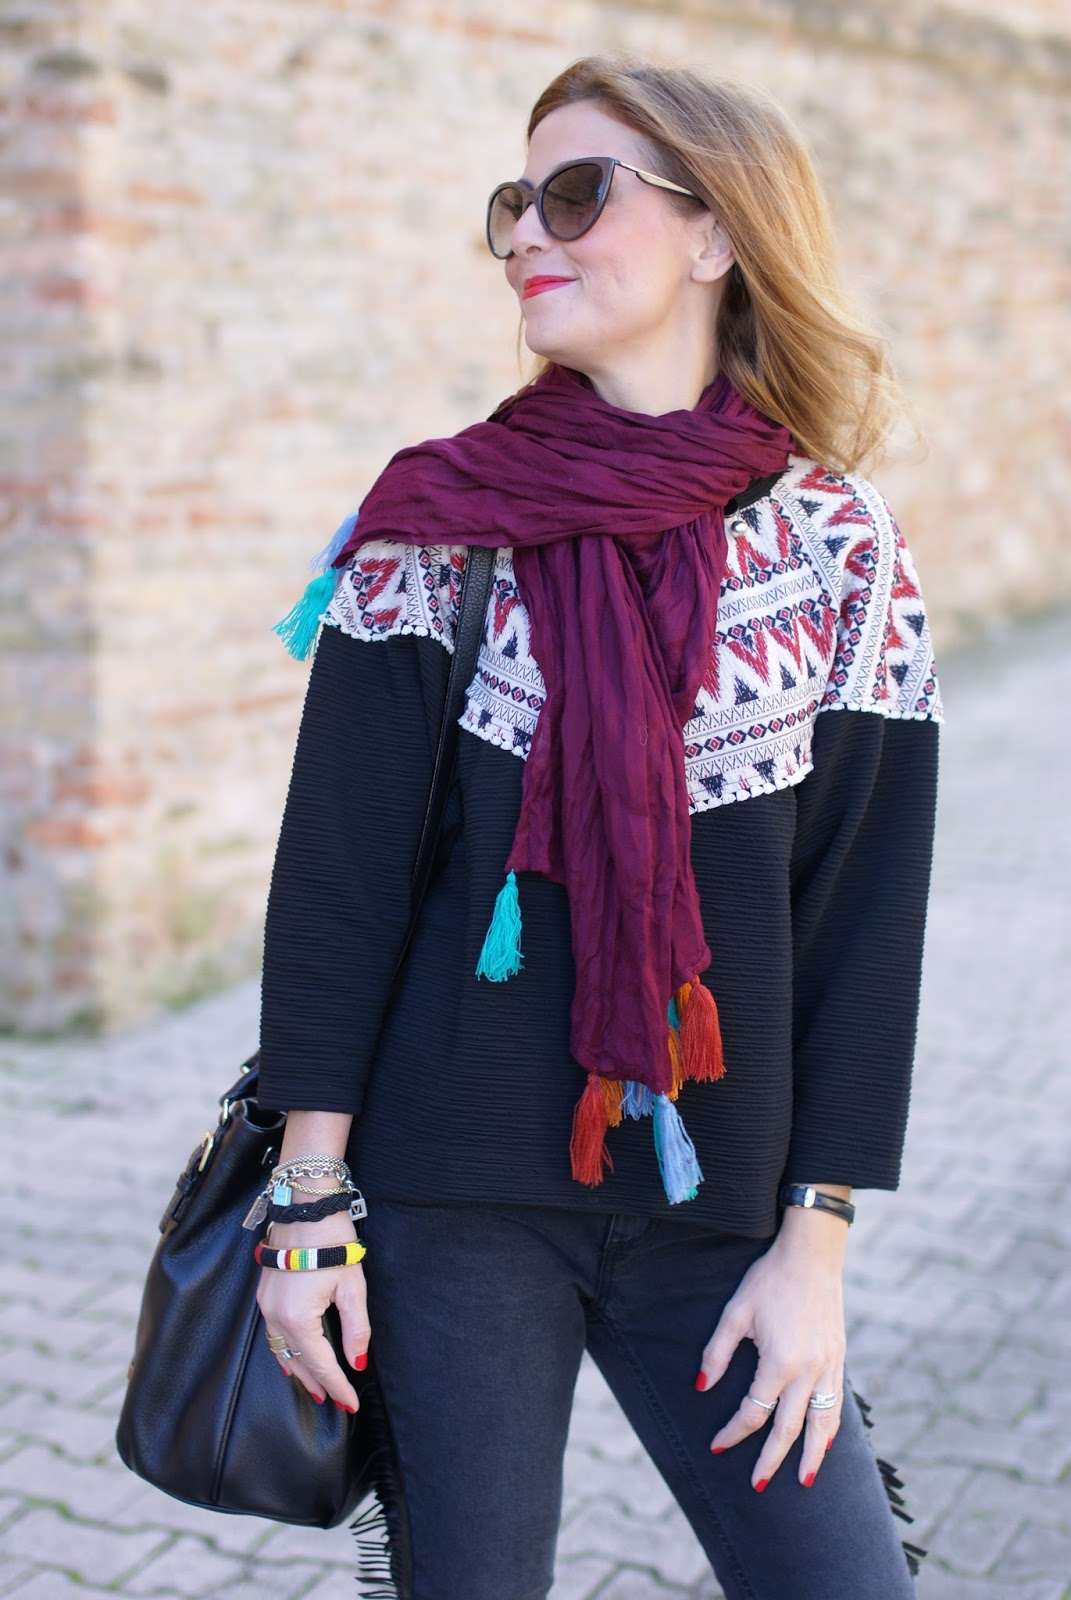 Fringed jeans and tassel scarf, sciarpa con nappine for an ethnic chic casual look on Fashion and Cookies fashion blog, fashion blogger style